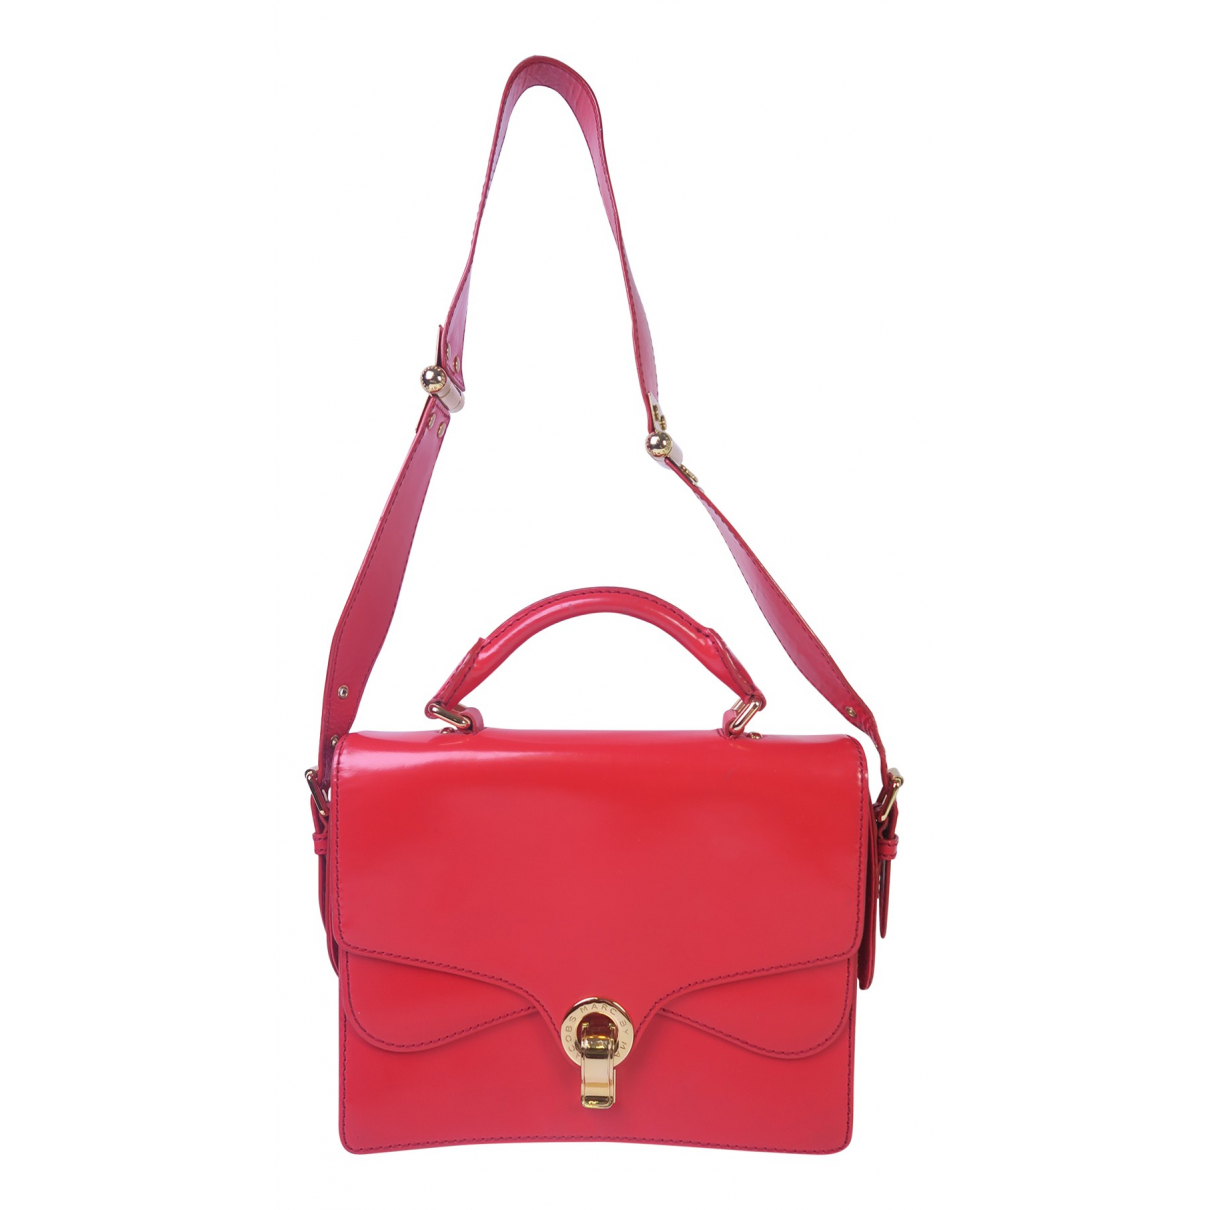 Marc By Marc Jacobs N Red Patent leather handbag for Women N